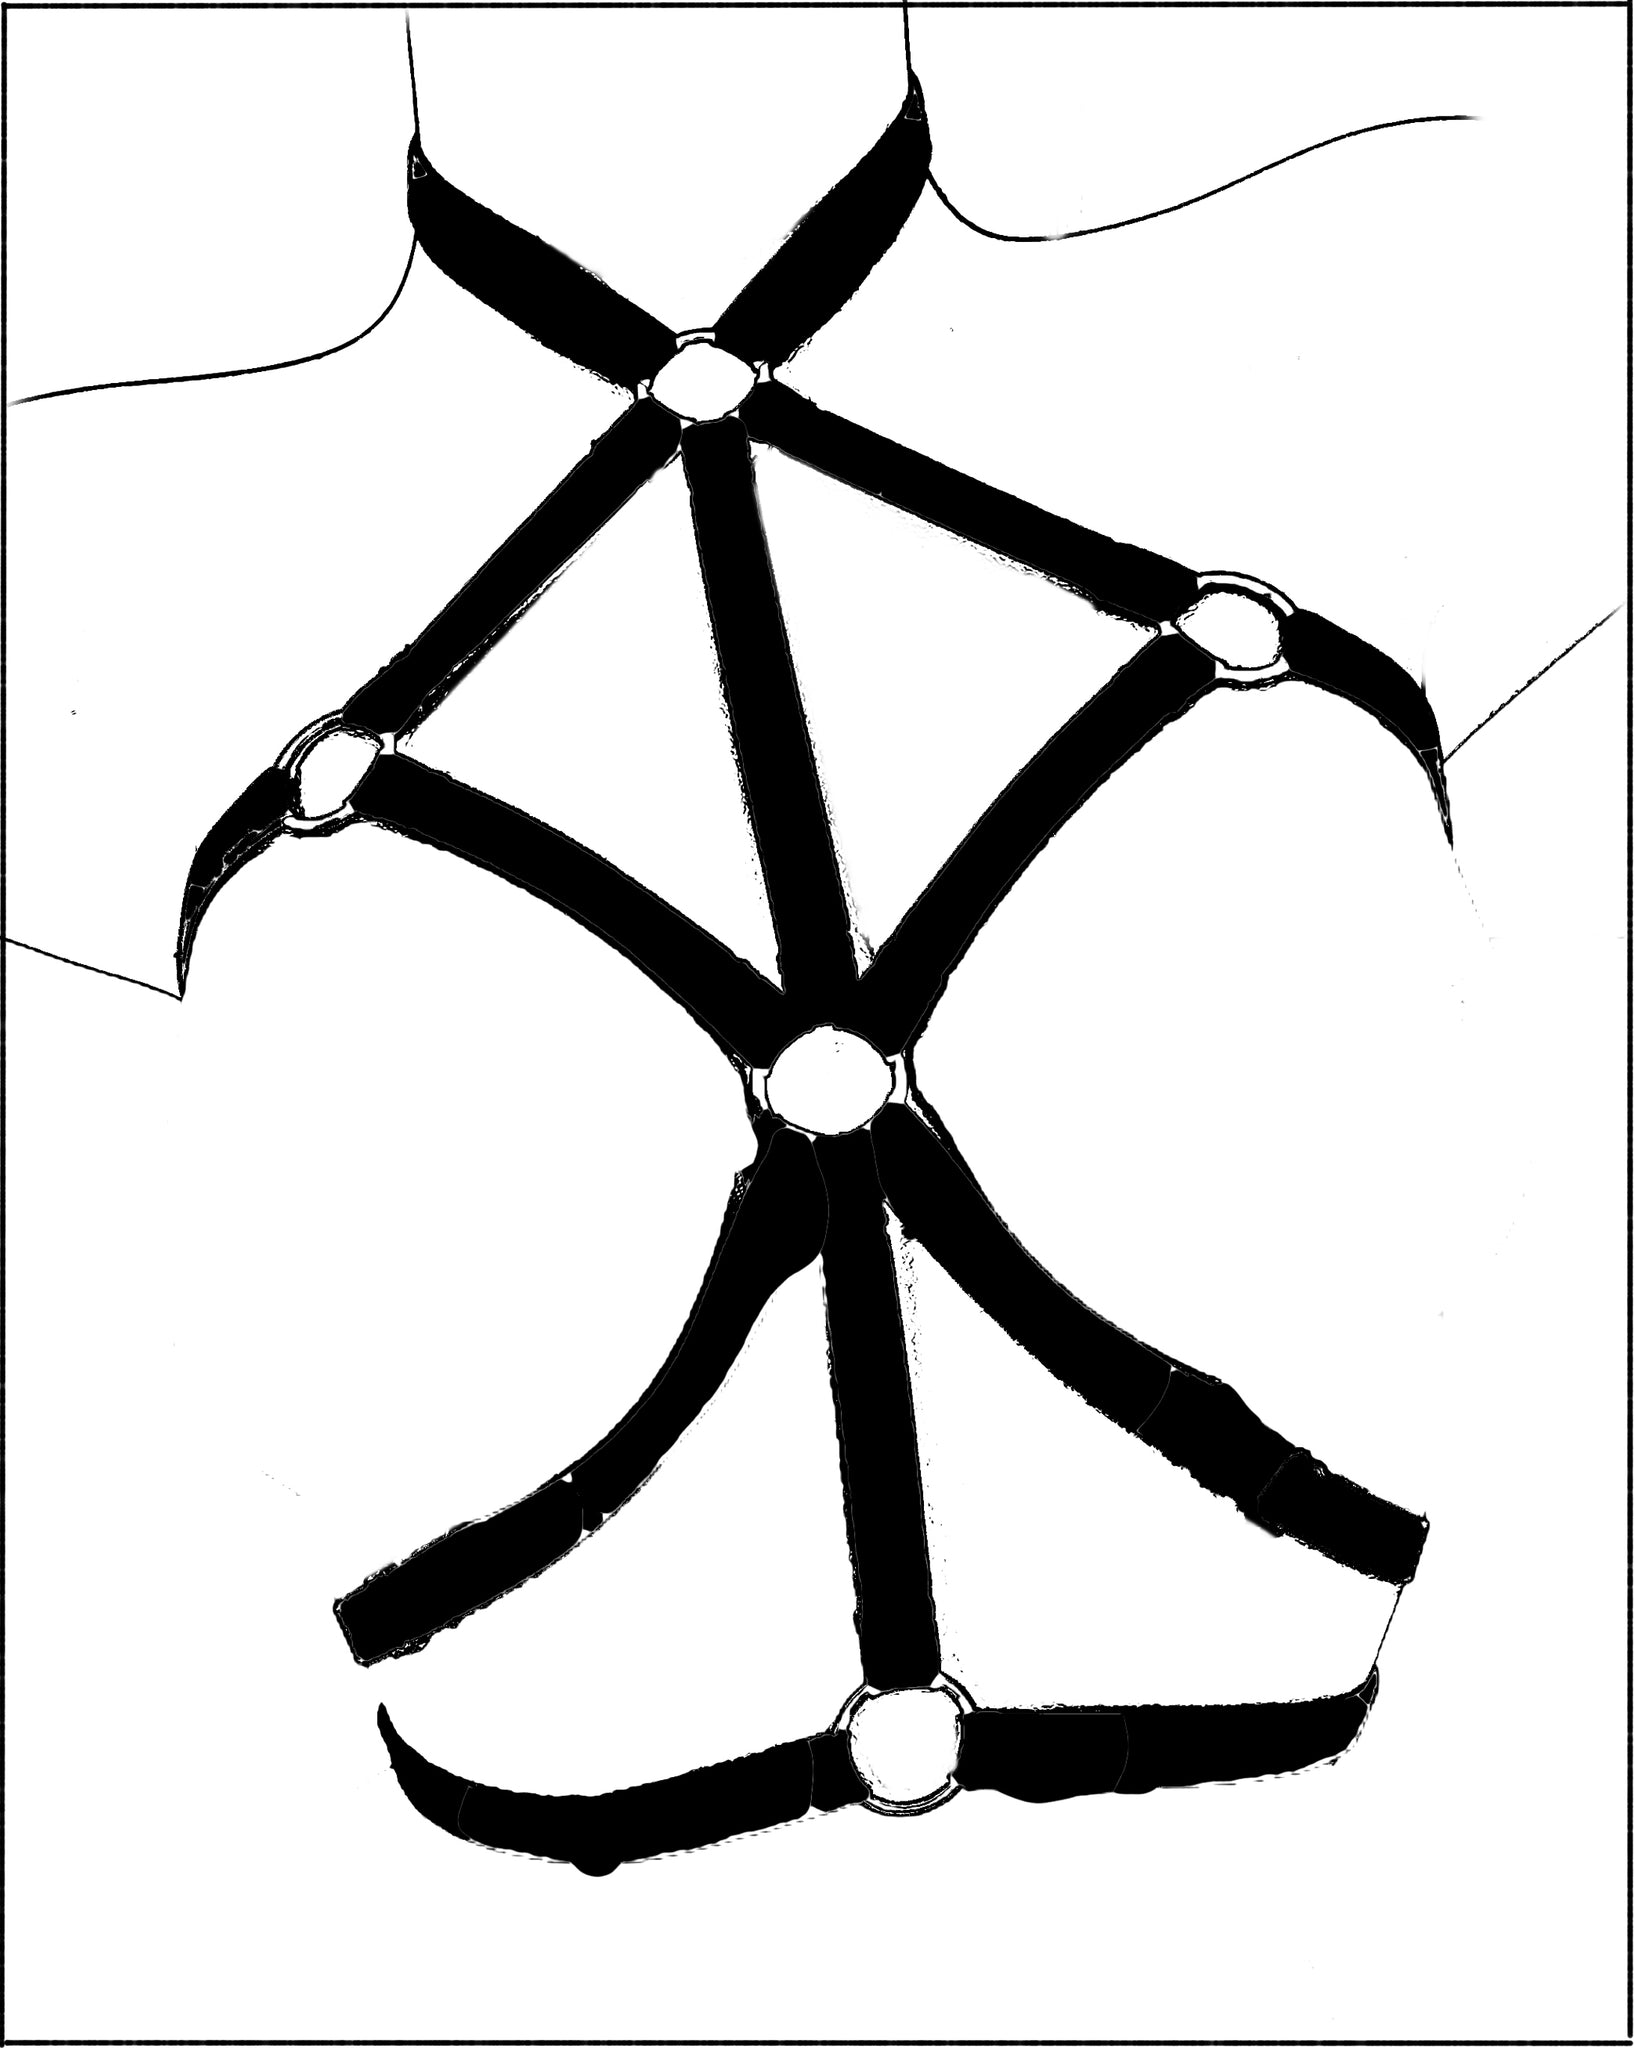 Mosaic harness